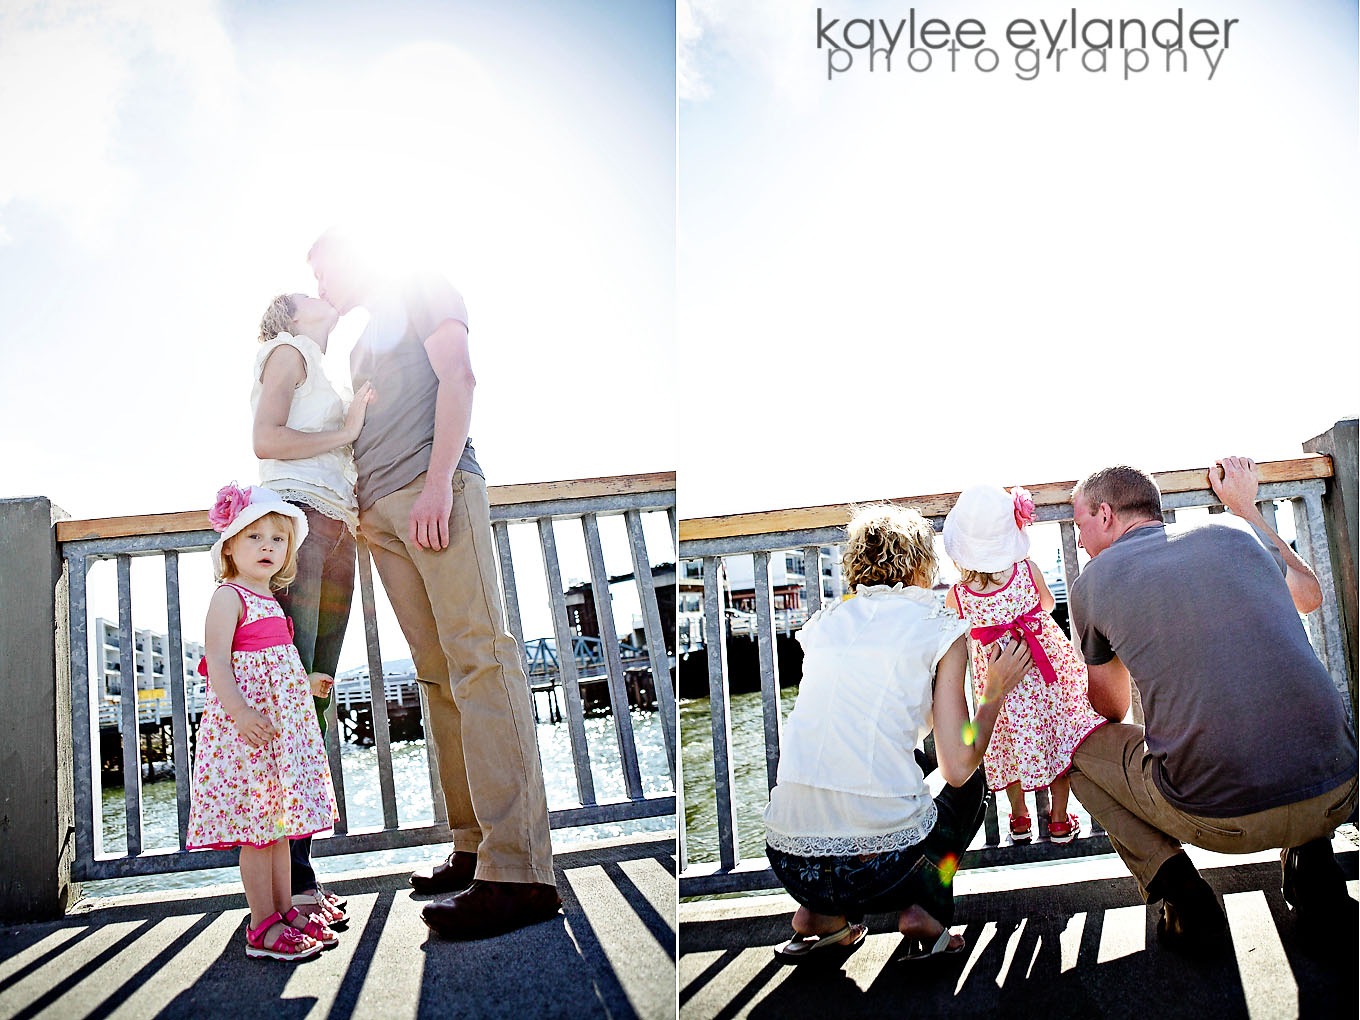 rochelle dave 14 Ice Cream, Sand & Hope | Snohomish Wedding Photographer | Kaylee Eylander